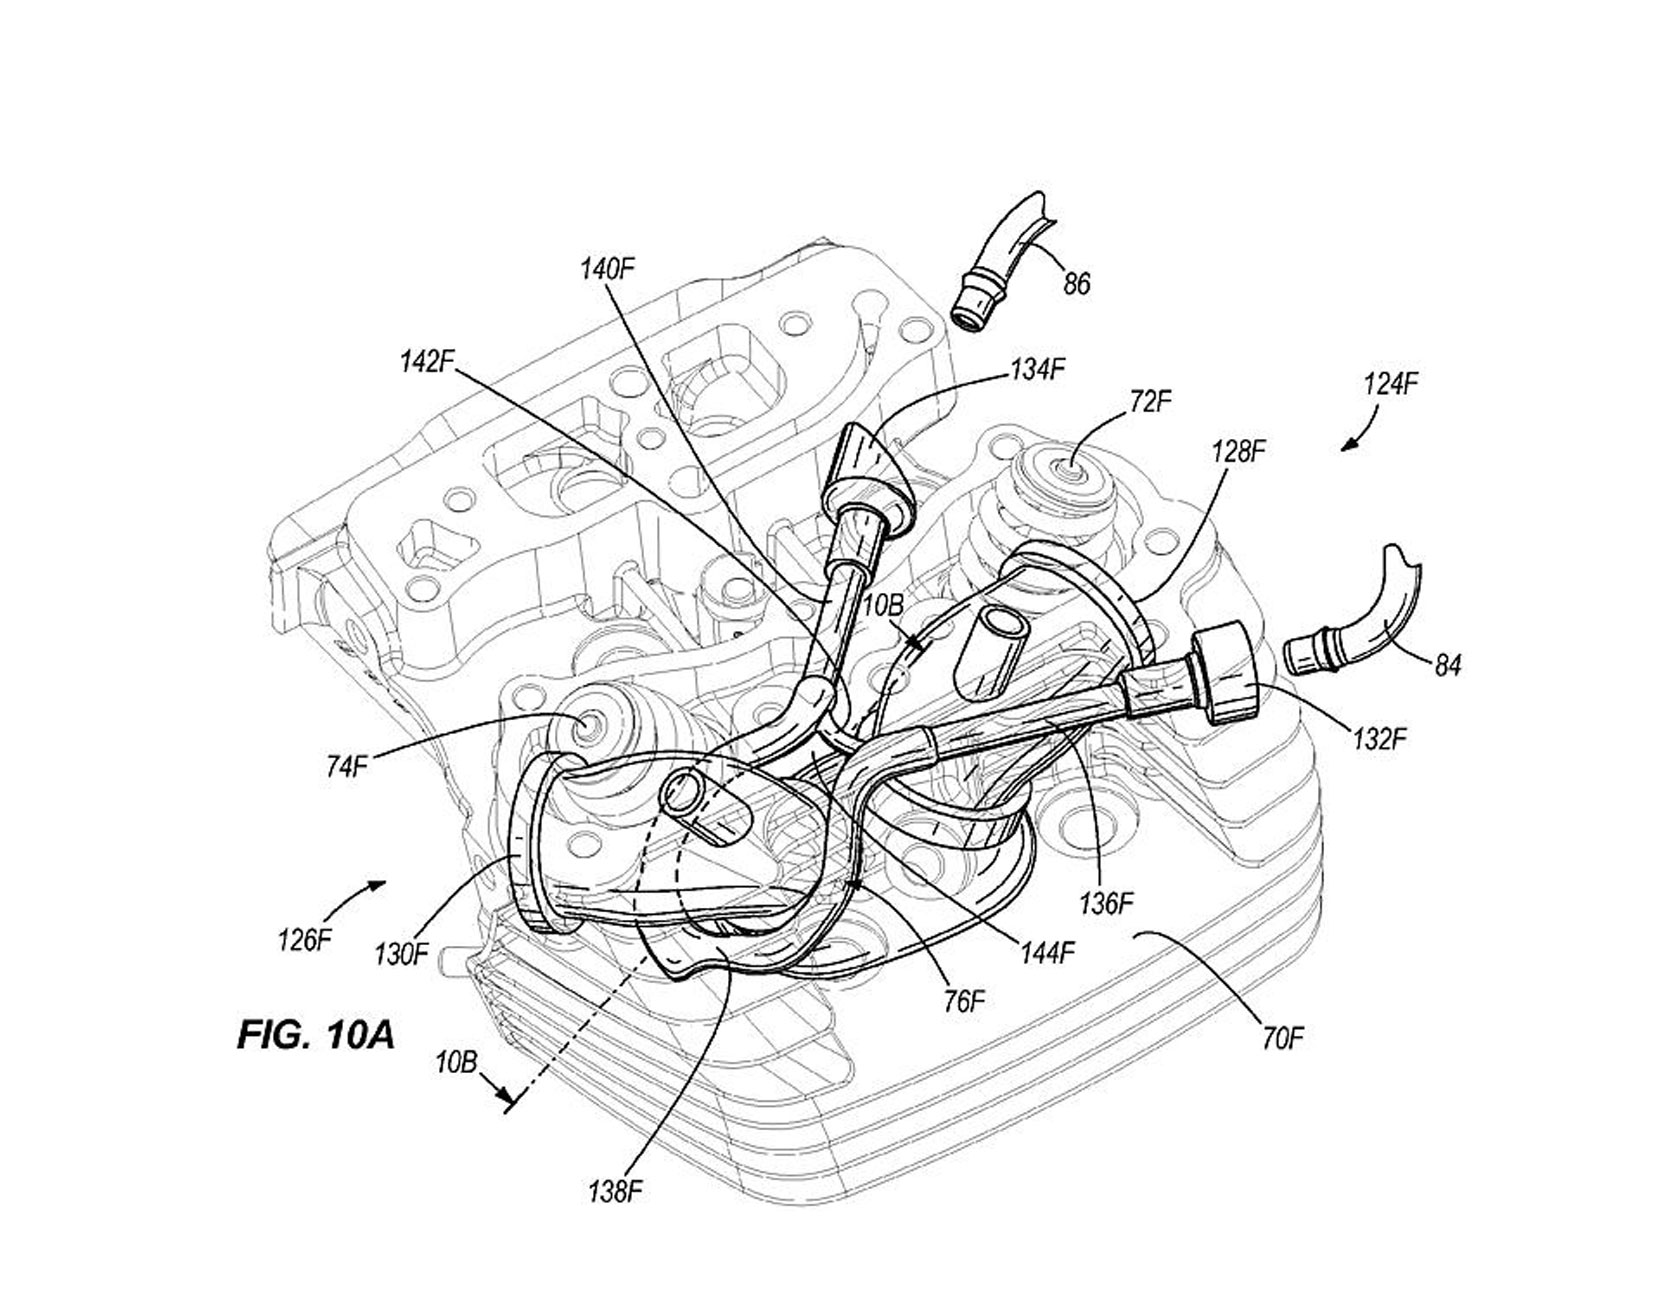 Harley Engine Schematics Best Ideas About Motorcycle Chopper Gm 10391240 Radio Wiring Diagram Davidson Water Cooled Us Patent Concept Spy Shots 2011 Images